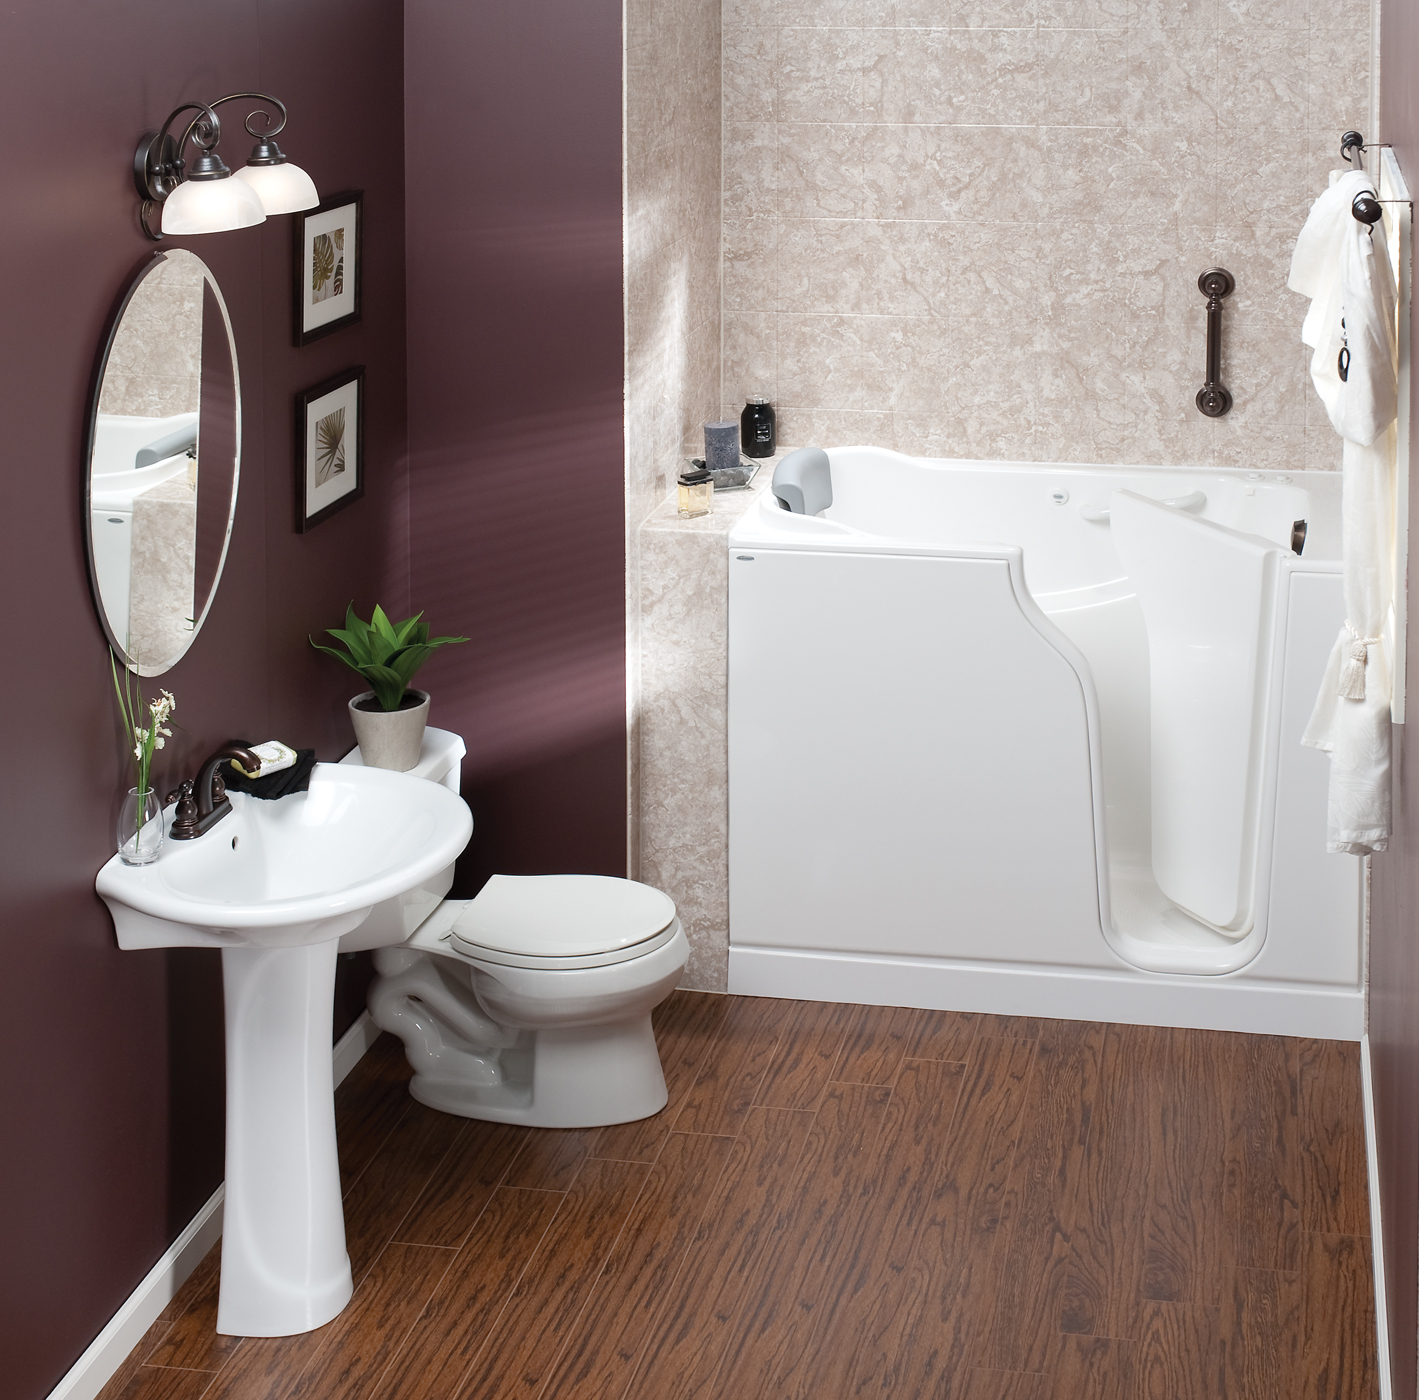 Walk-In Tubs Chicago | Walk-In Tubs for Elderly | Chicago Walk-In ...